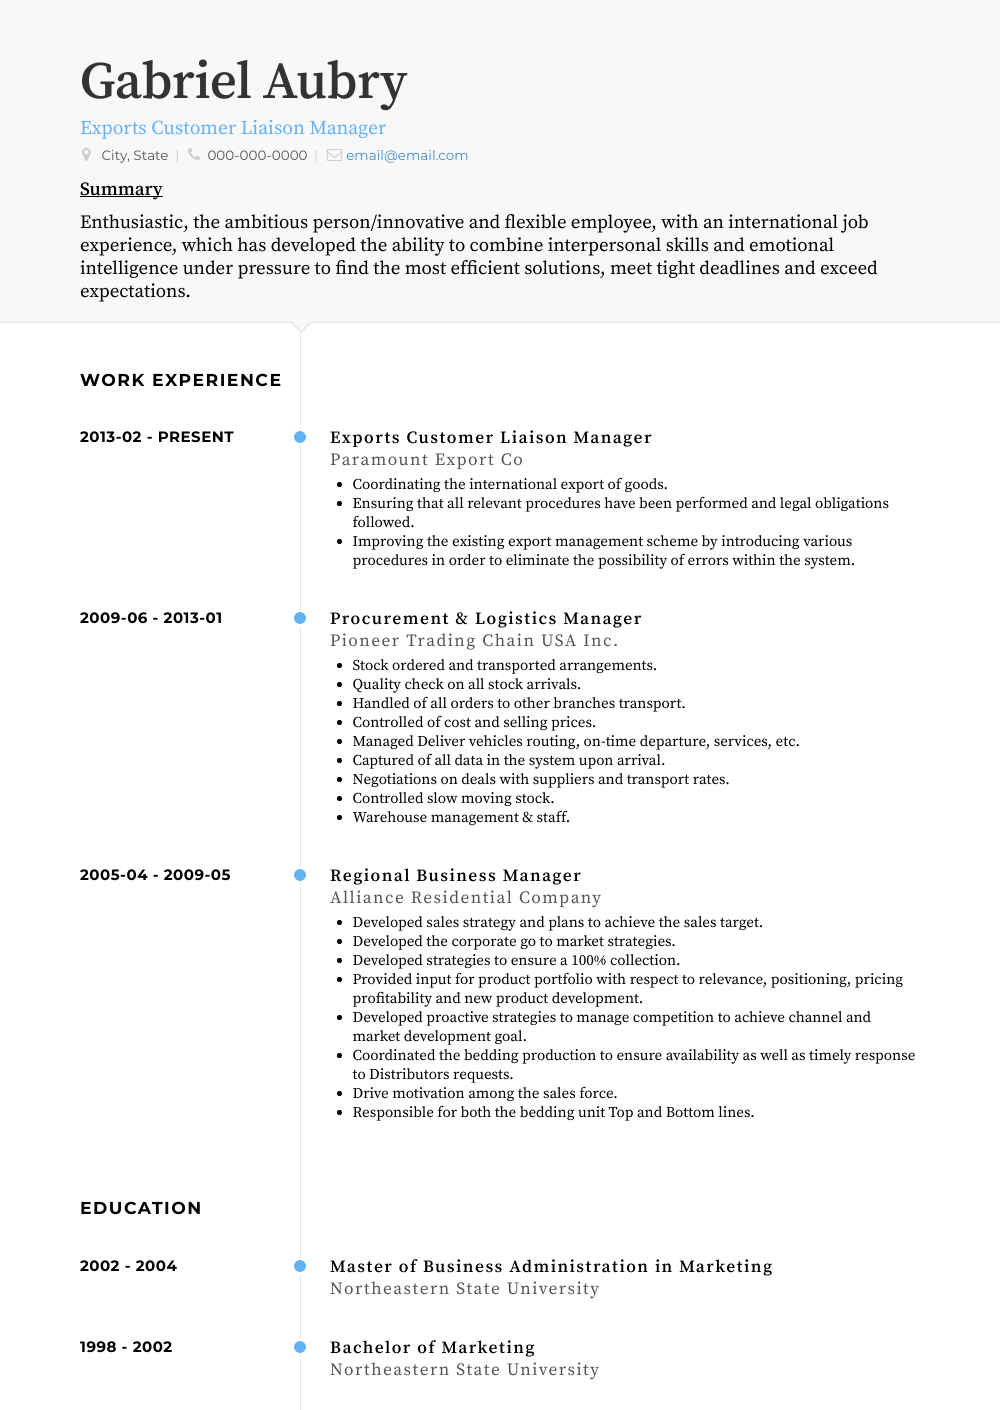 Exports Customer Liaison Manager Resume Sample and Template